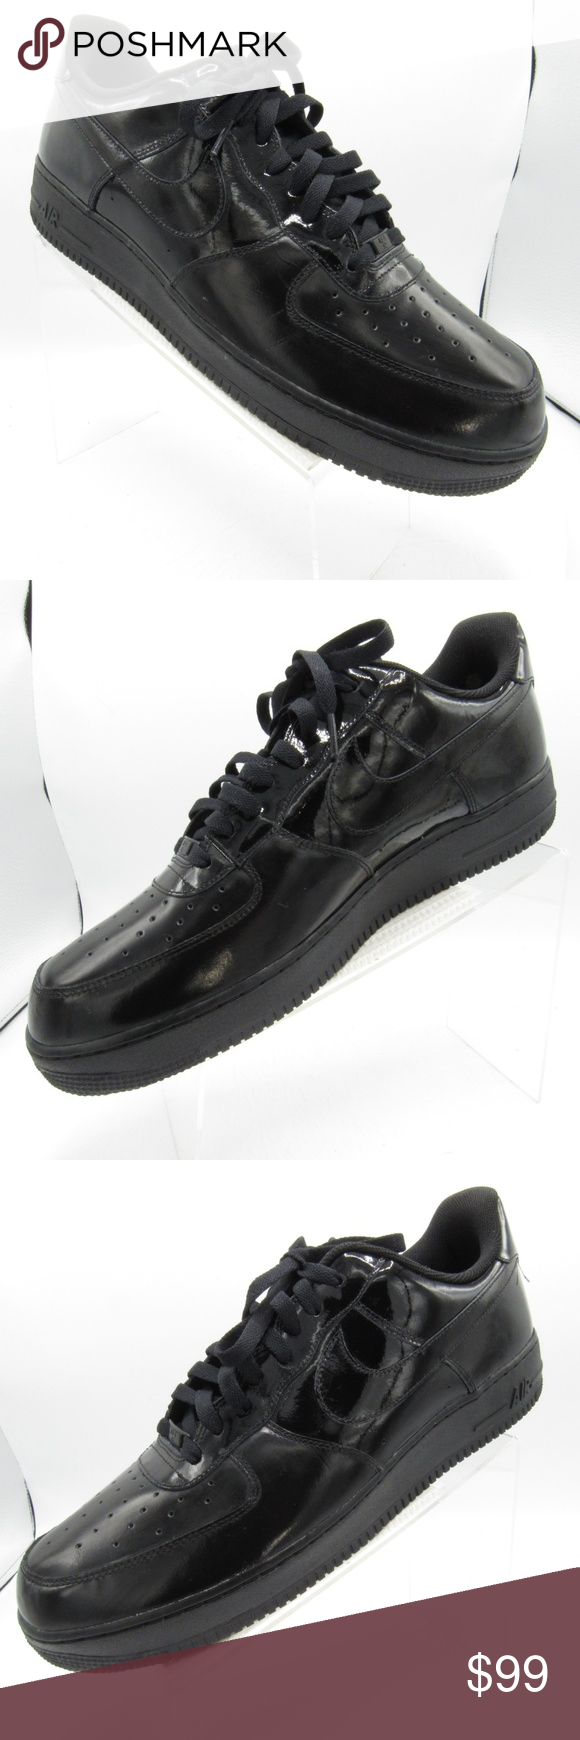 free shipping cd8a7 a1c53 Nike Air Force 1 Size 15 Black Leather Mens Shoes Nike Air Force 1 488298-